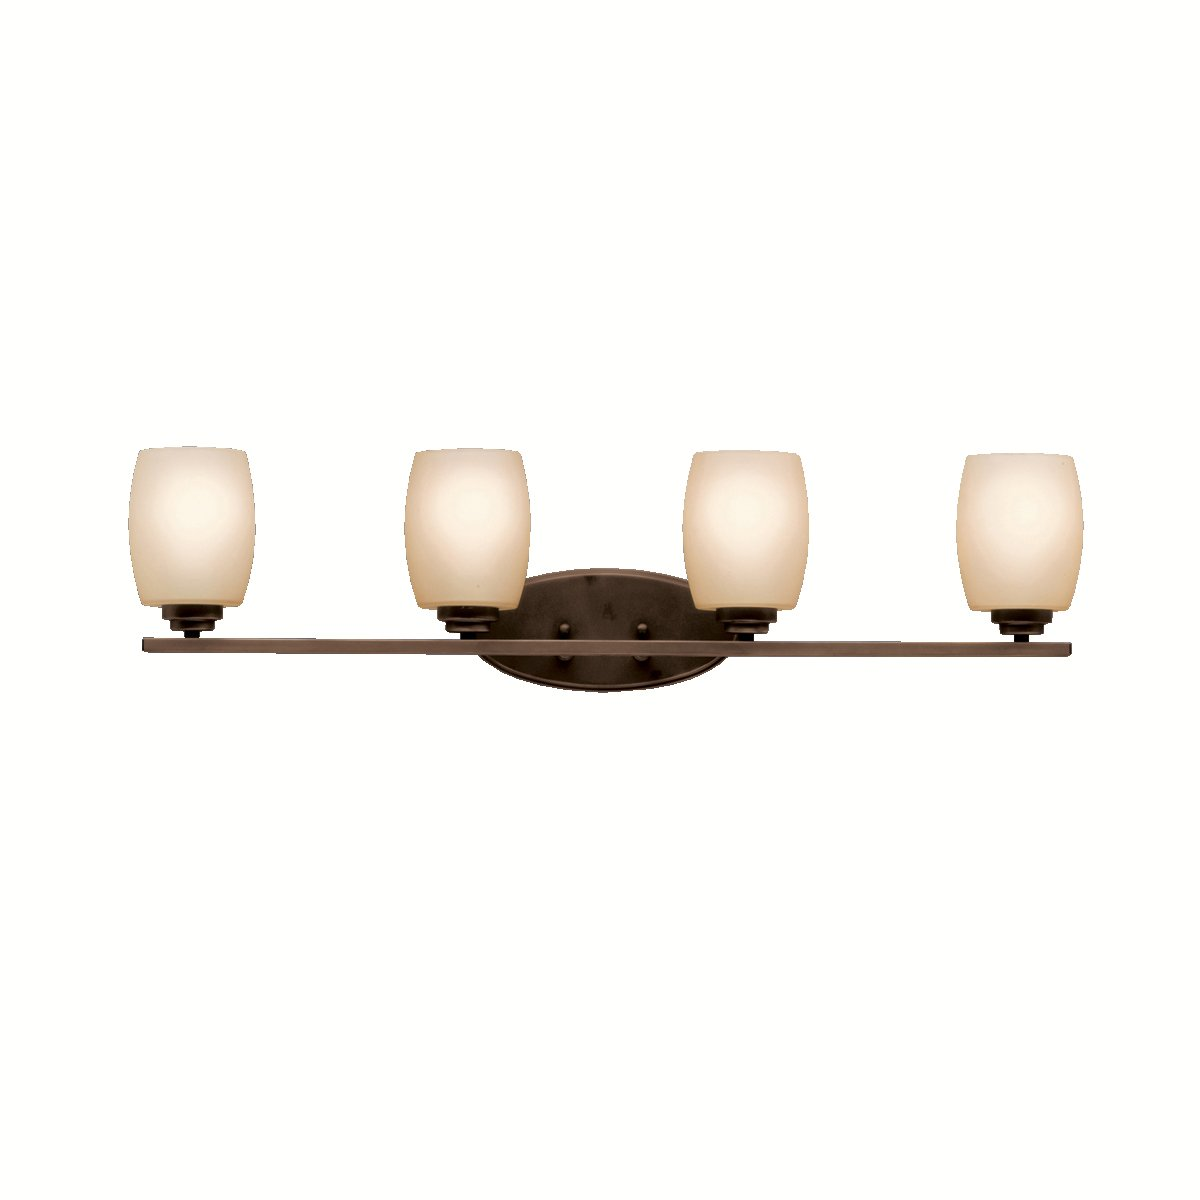 Kichler 5099oz bath vanity wall lighting fixtures bronze 4 light 34 w x 10 h 400 watts vanity lighting fixtures amazon com